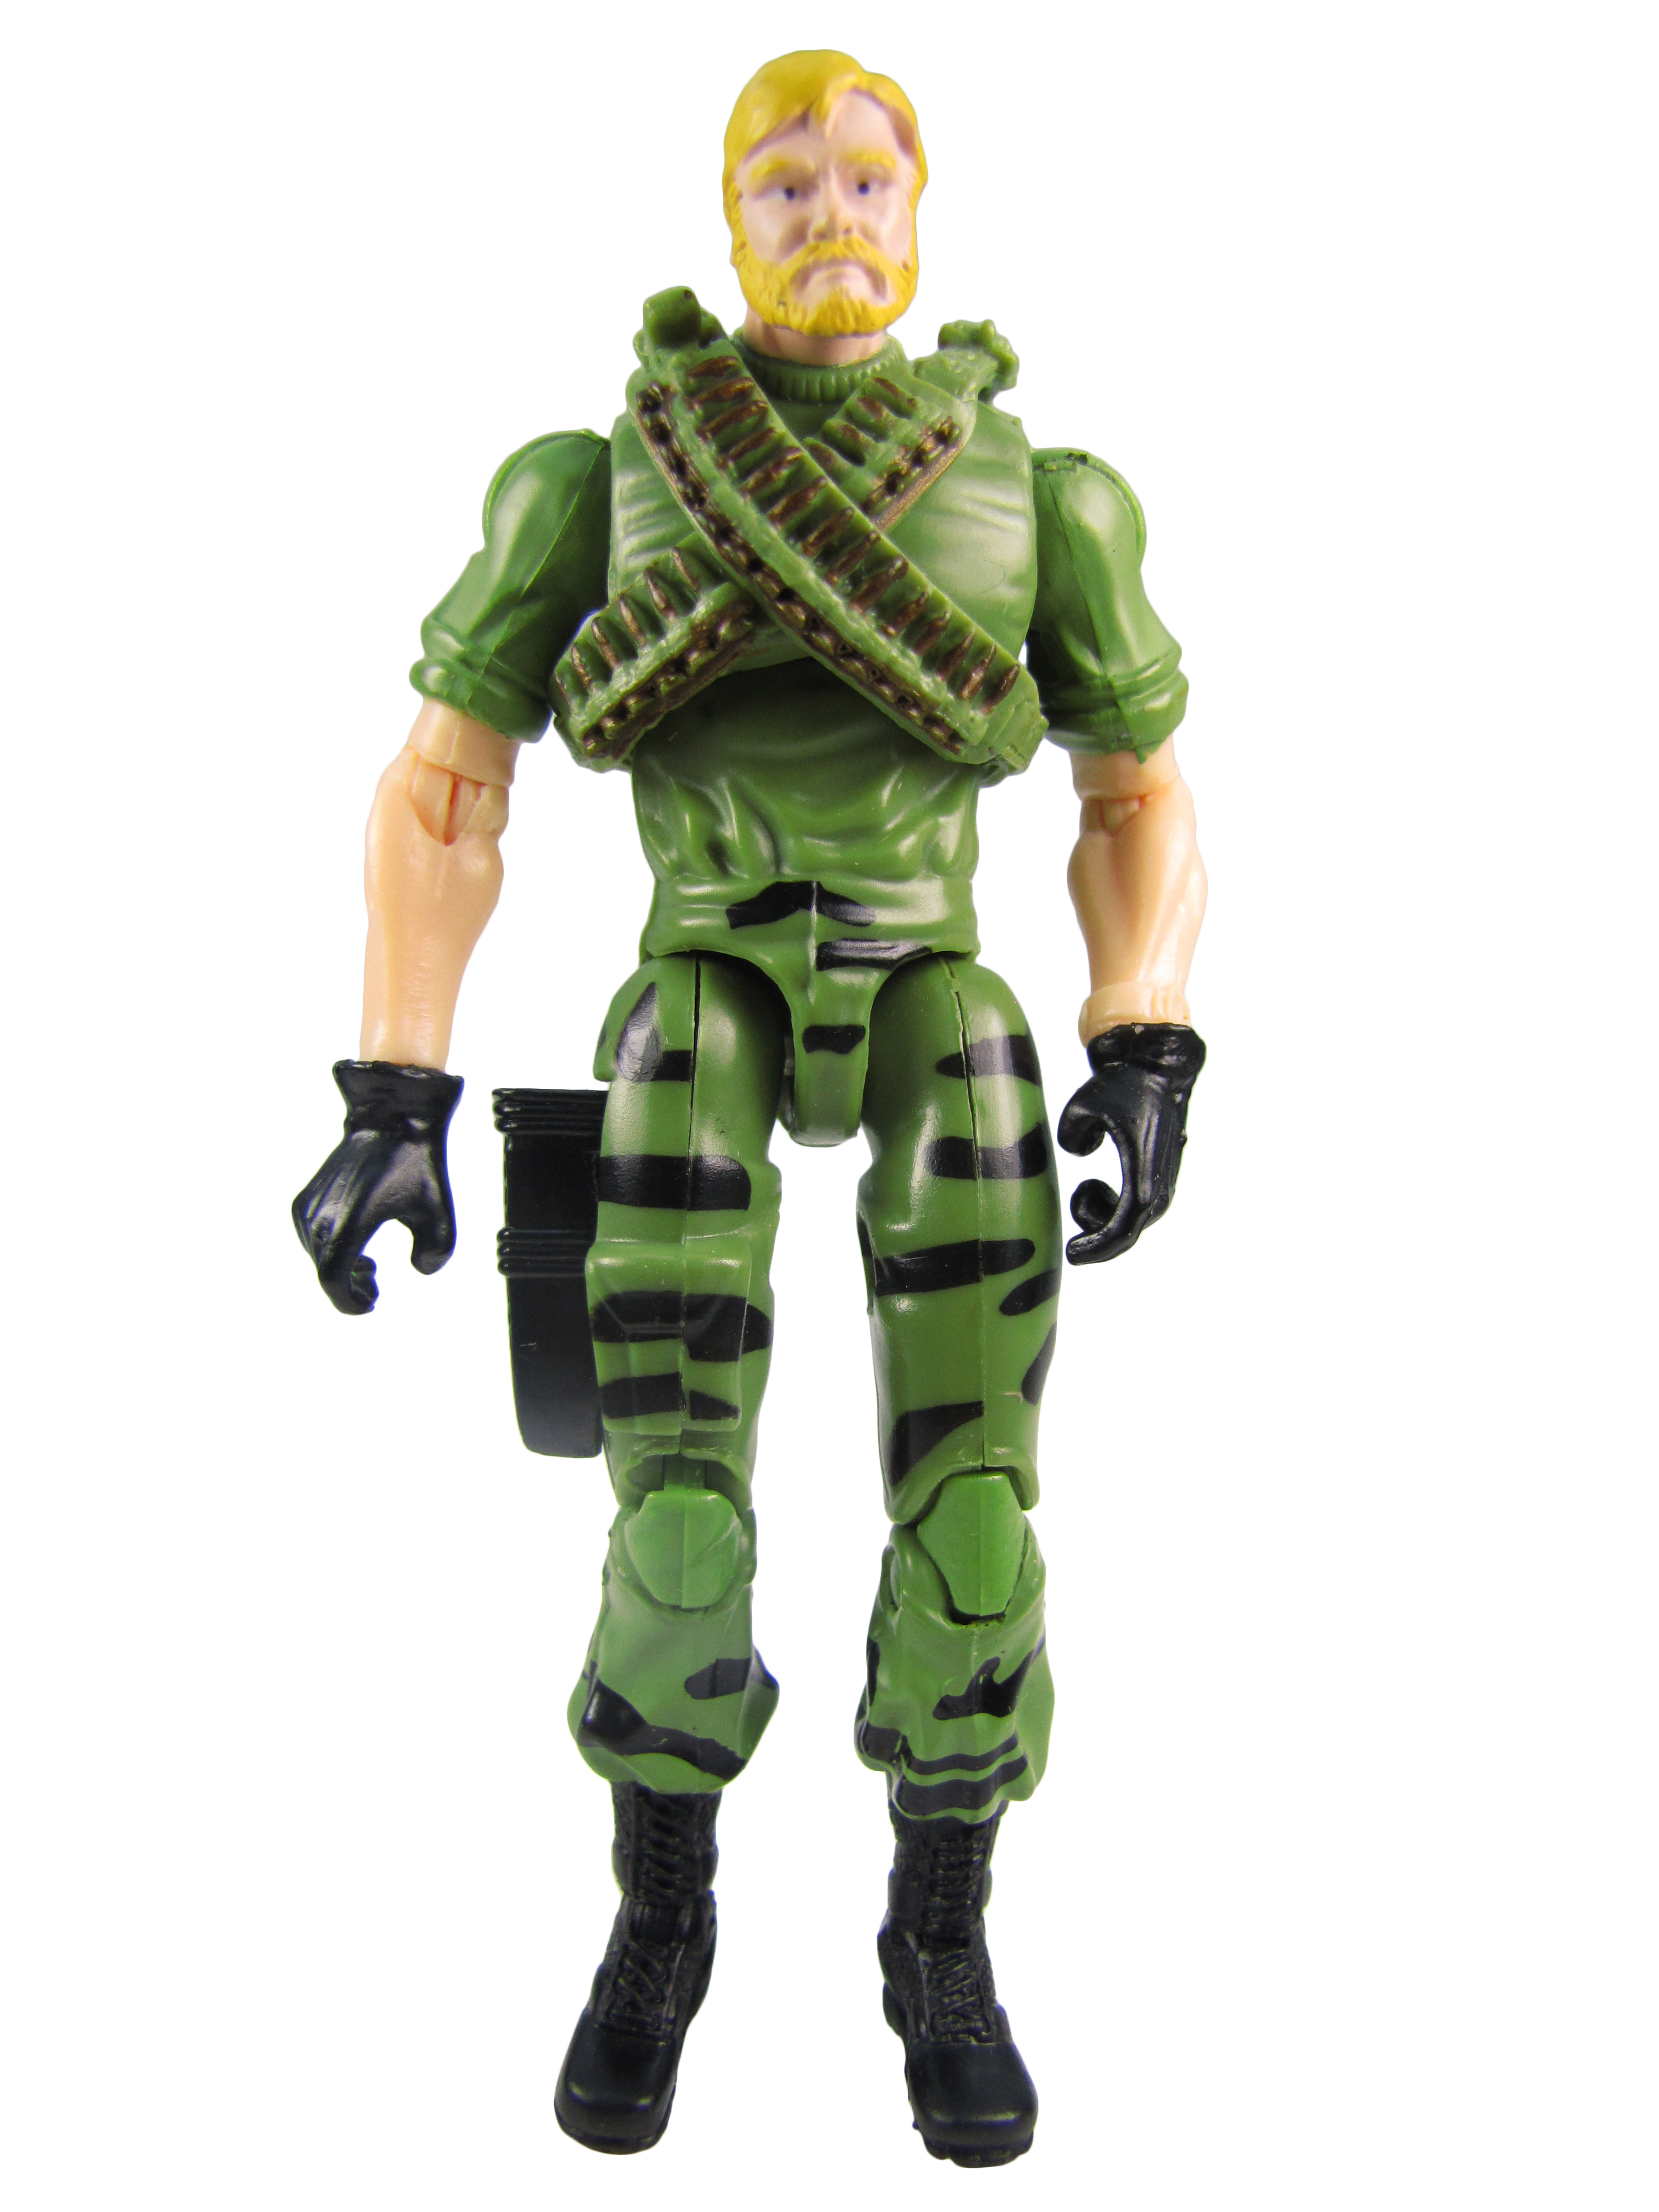 2008 GIJoe 25th Anniversary Comic Pack SSGT ROCK N ROLL GUNNER